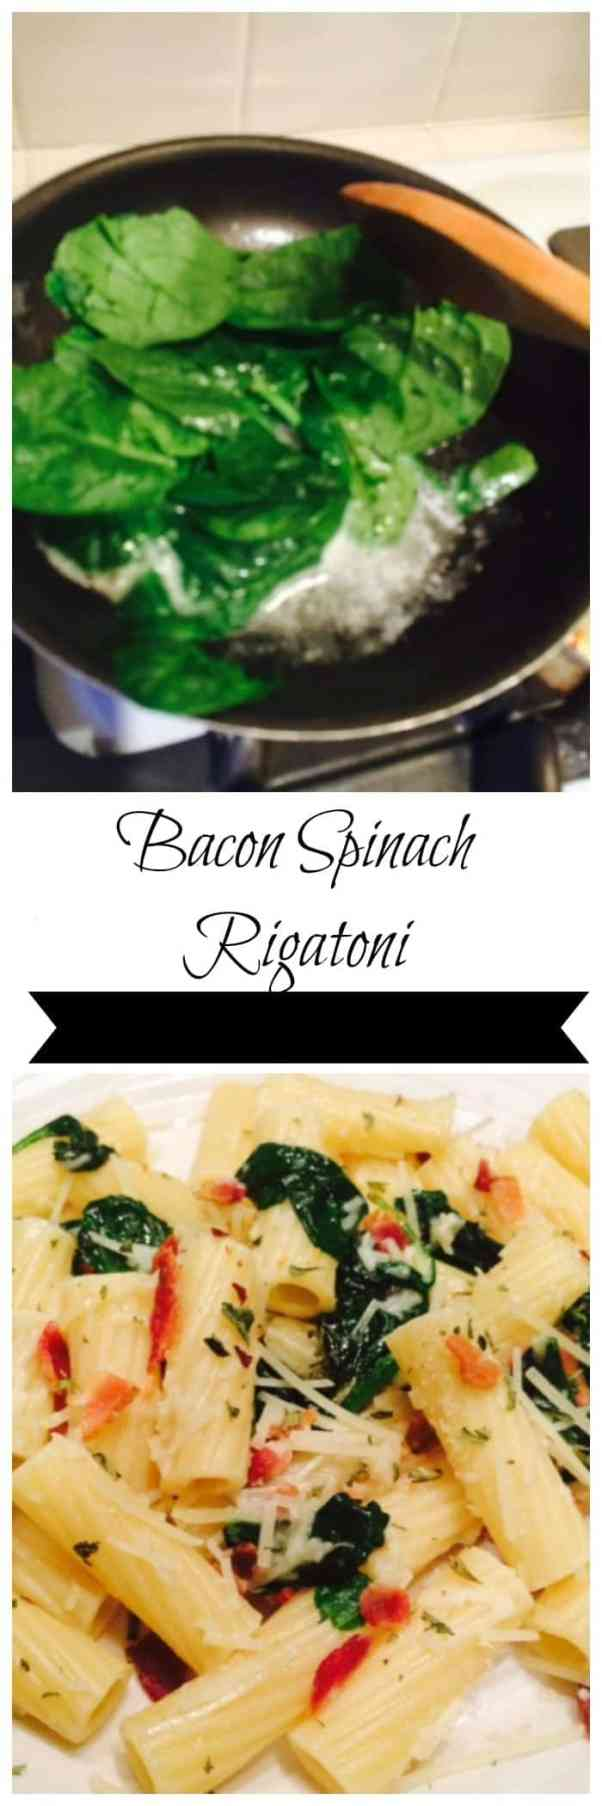 Bacon Spinach Rigatoni